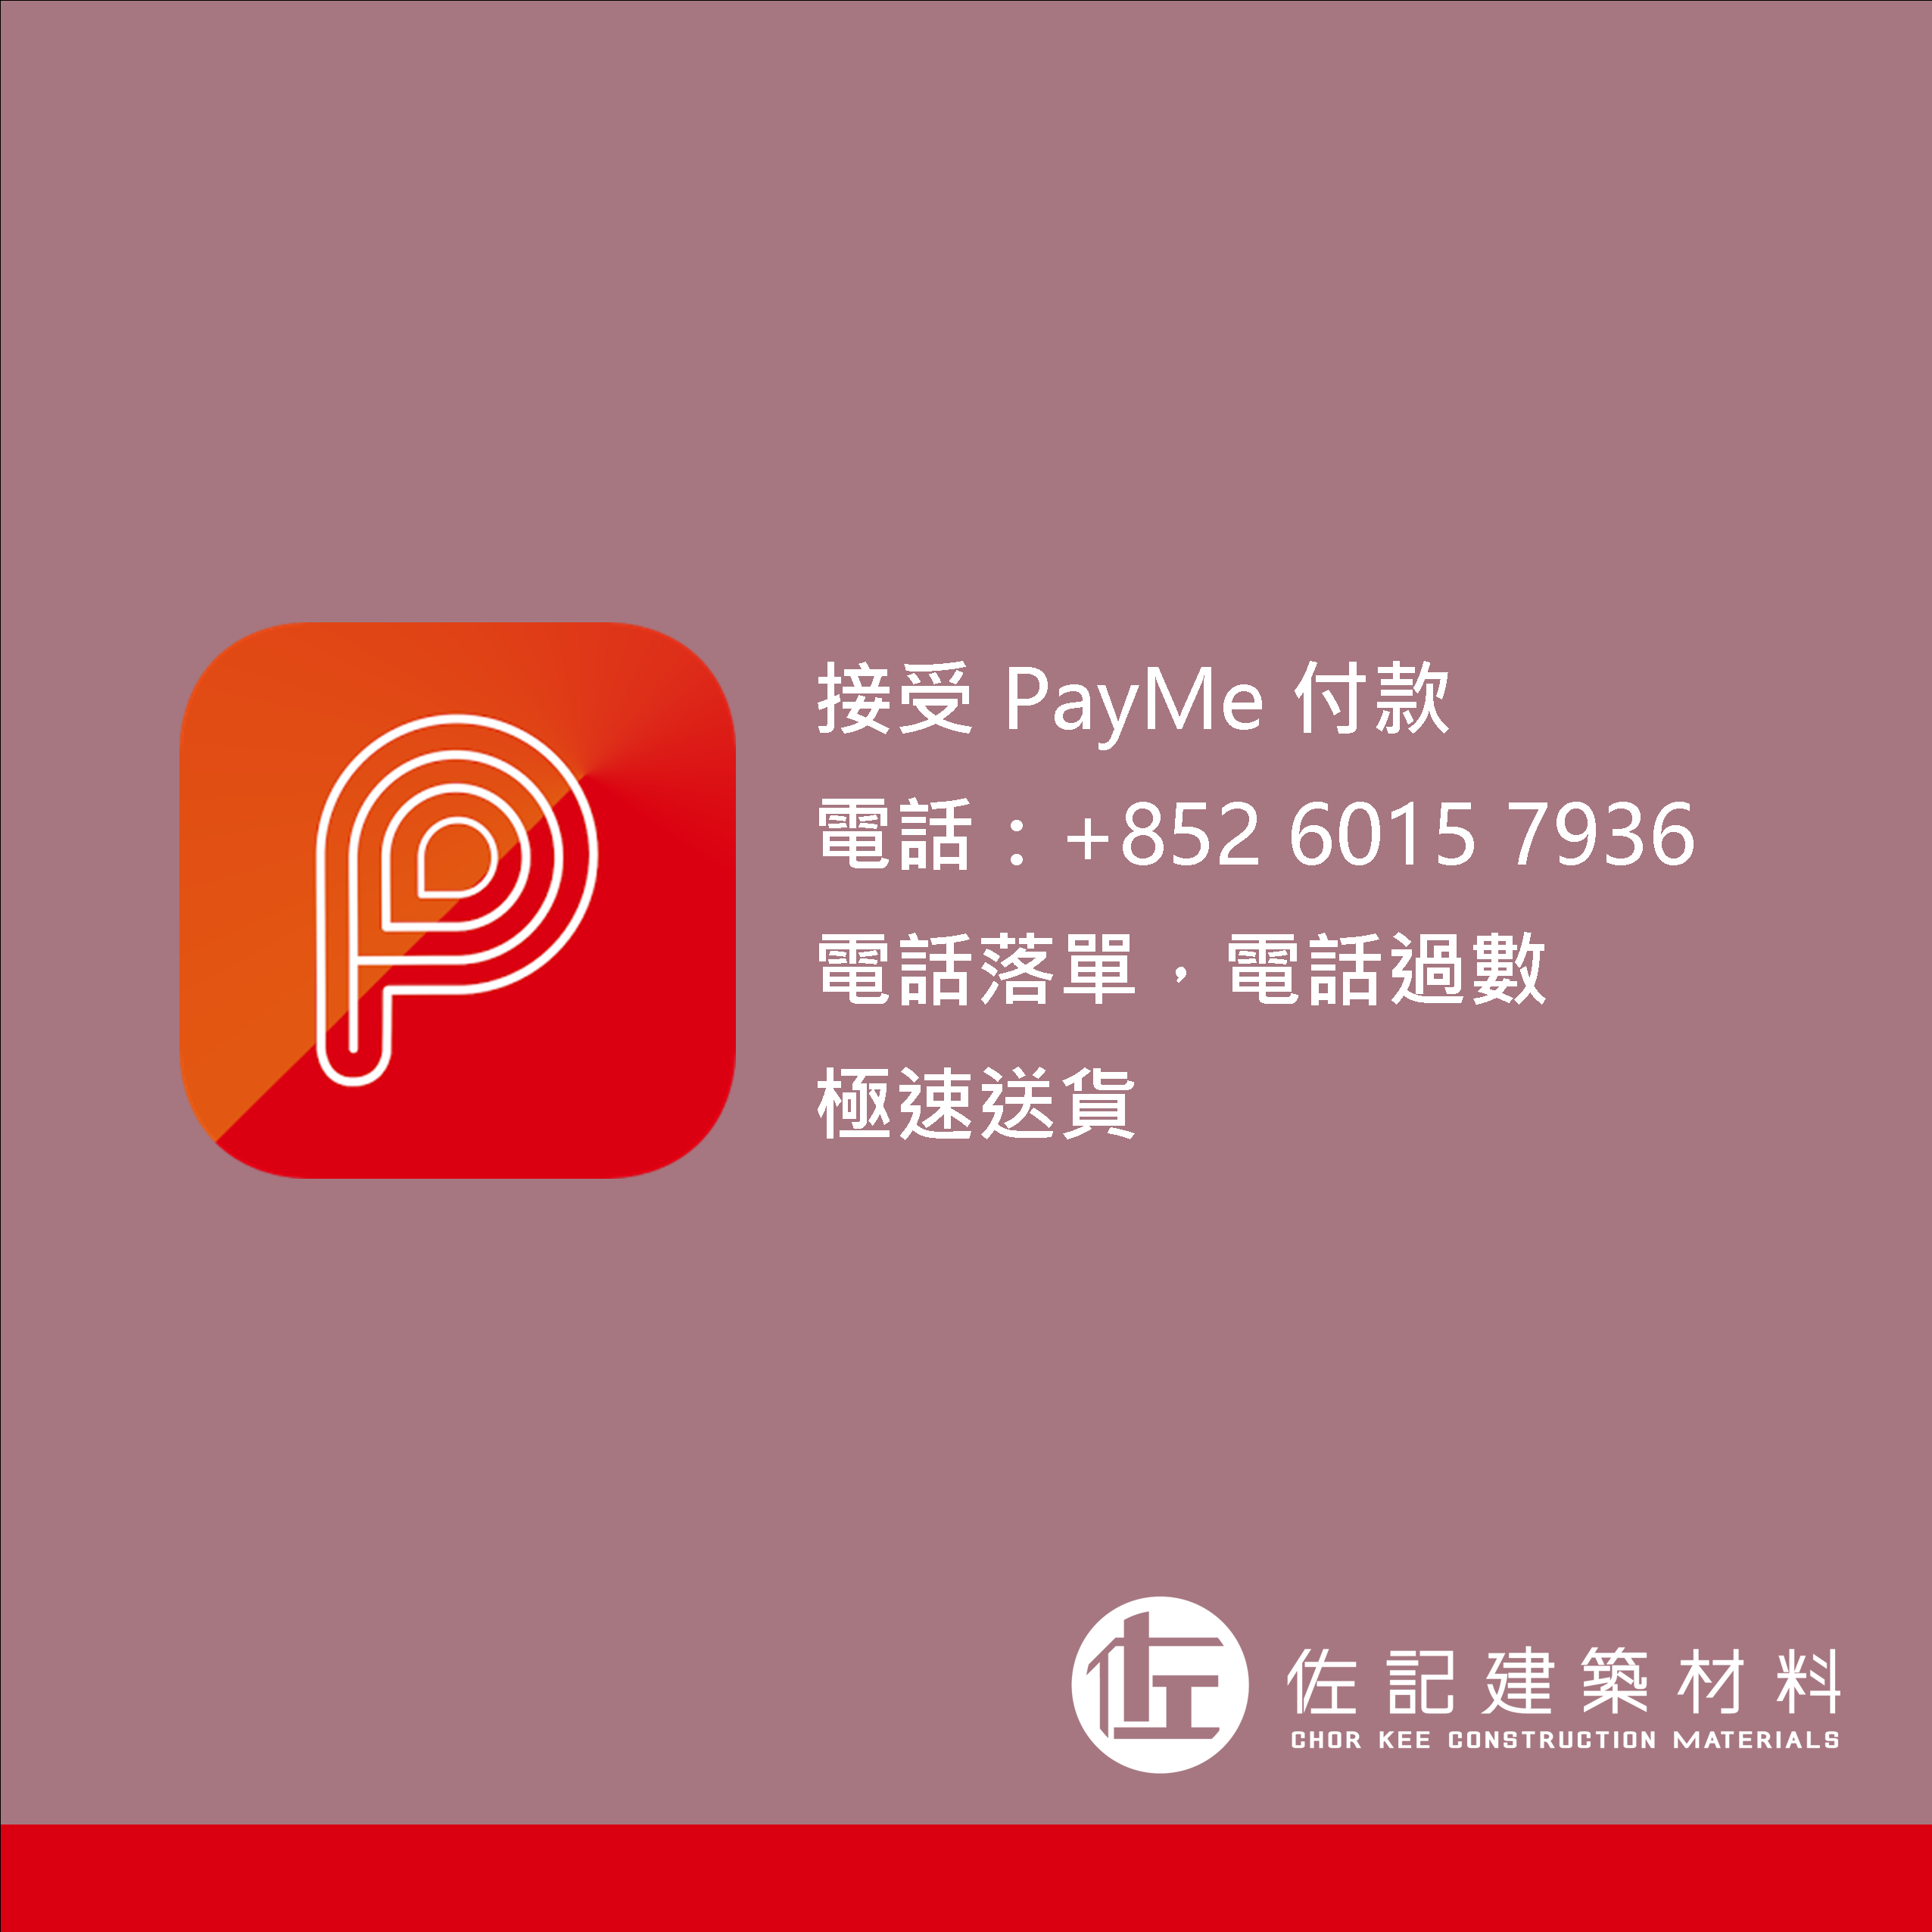 payme 付款.png